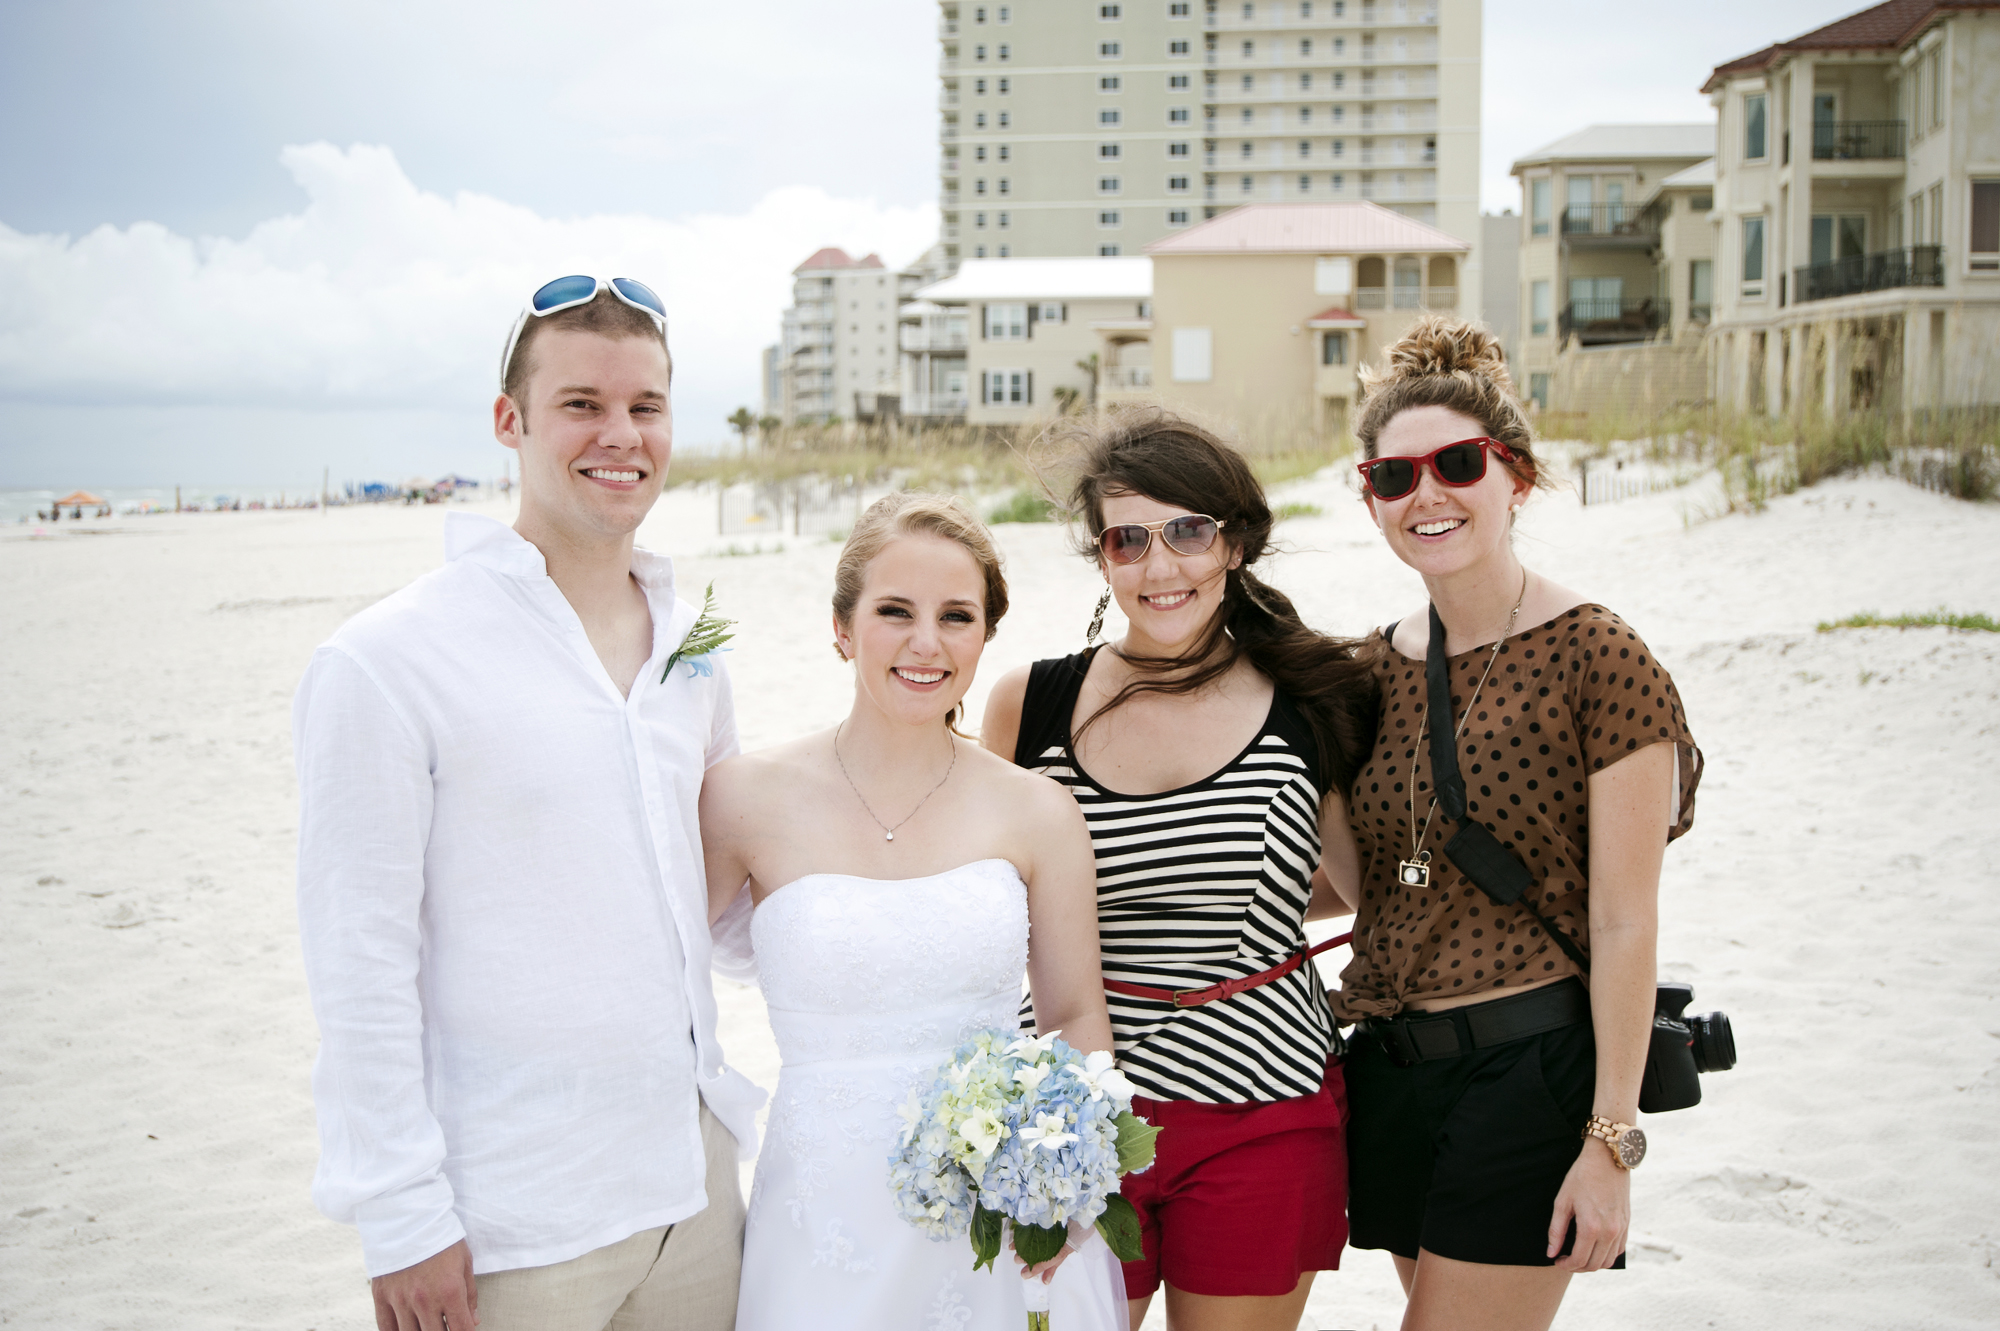 Brittany and I at our first wedding together on Gulf Shores Beach! Sarah and Tony look a lot more beautiful than us, but at least our first wedding is documented, haha.